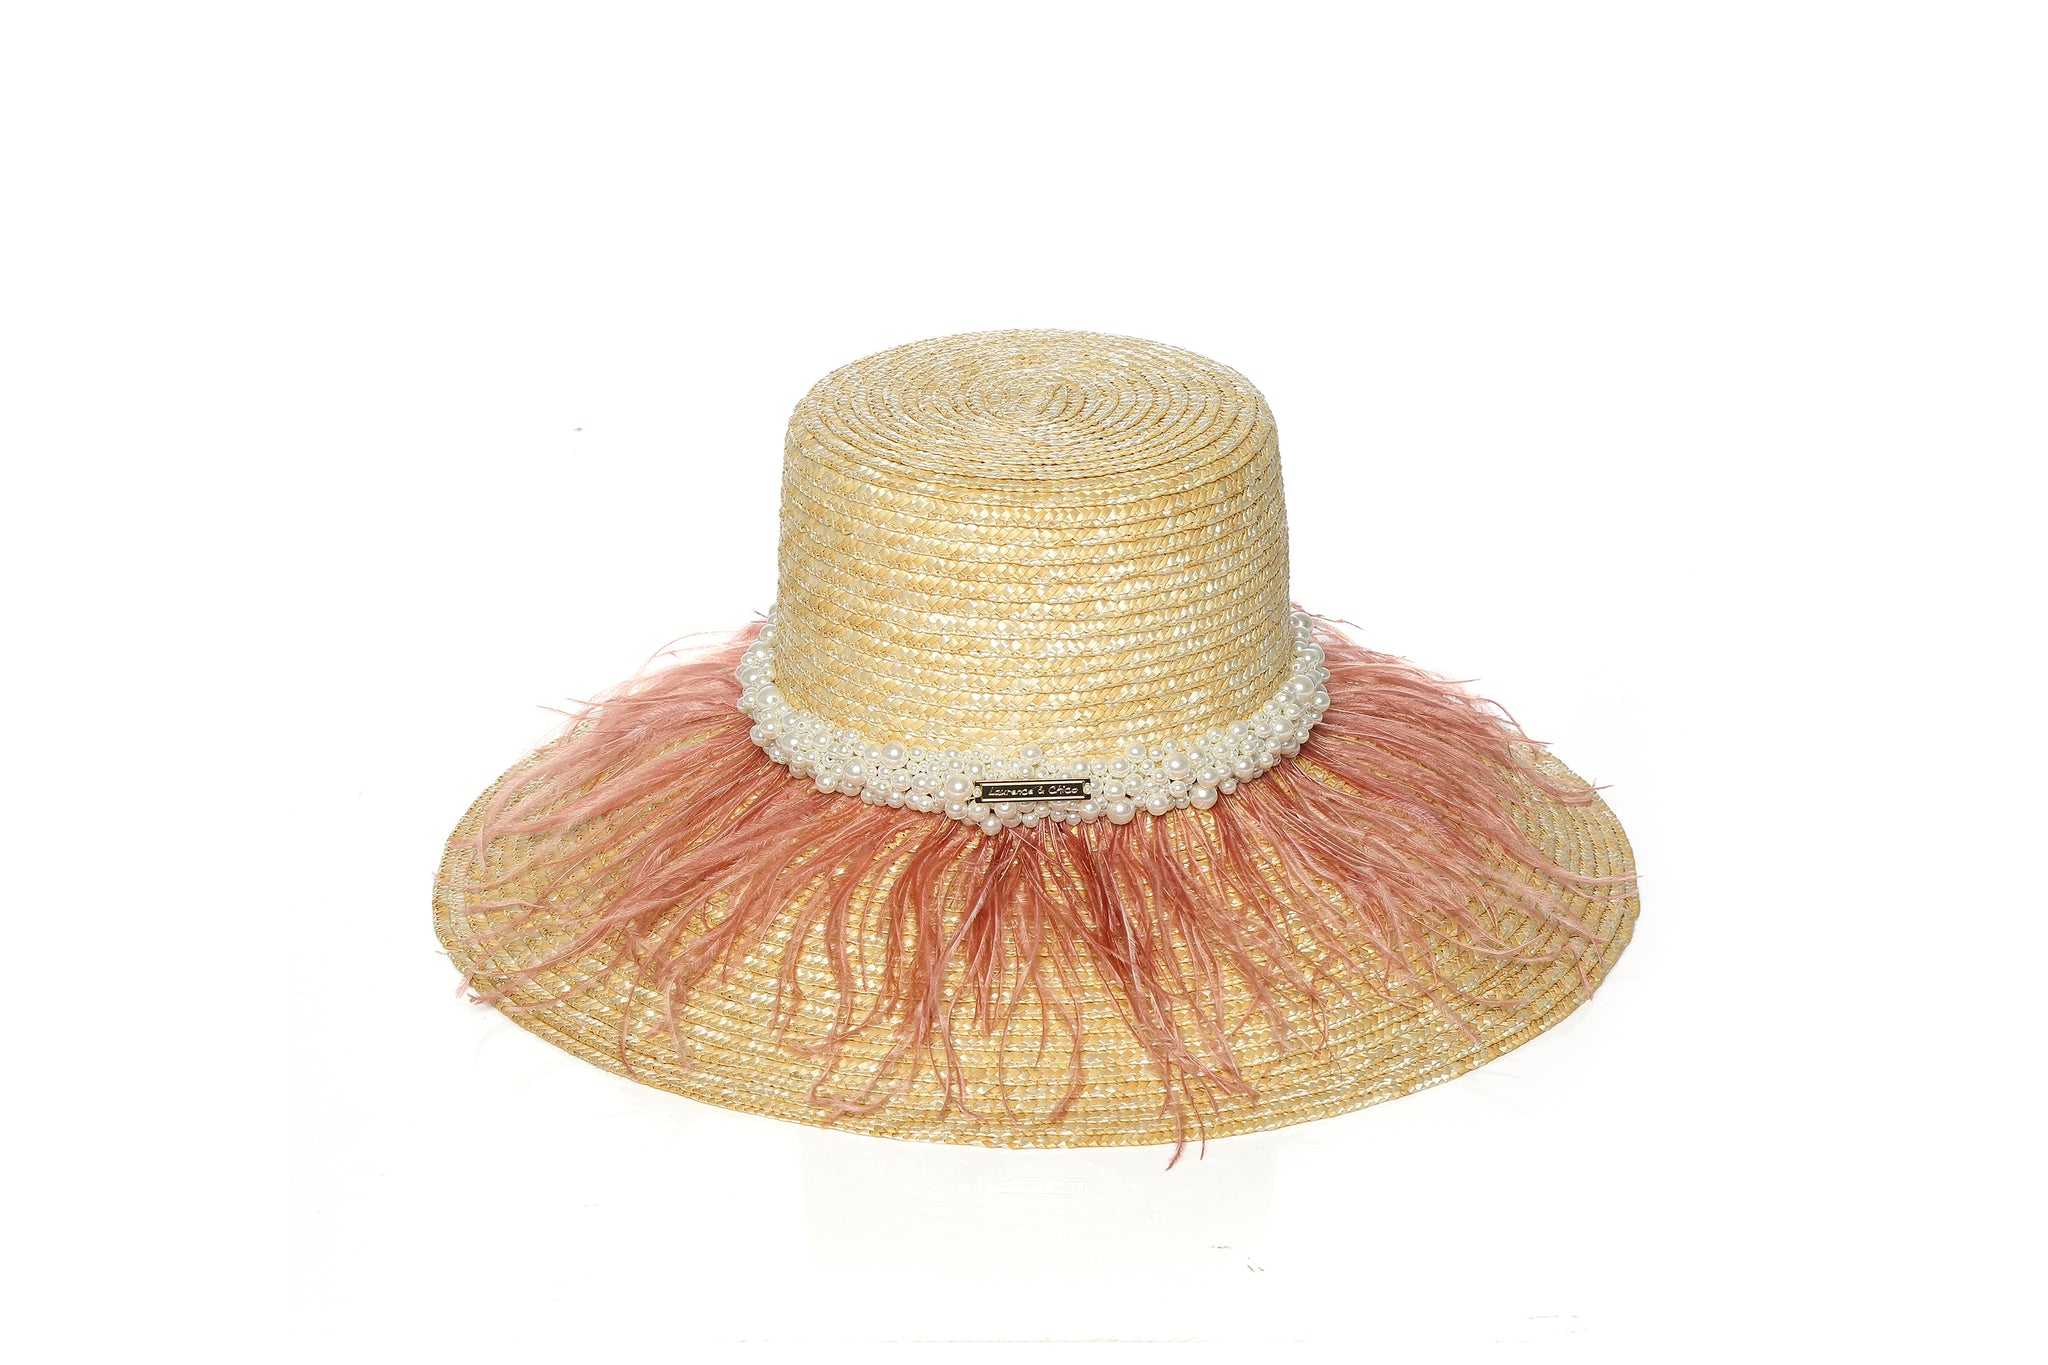 Structured Wheat Straw Hat with Pearl Embellishment and Vintage Pink Ostrich Feathers